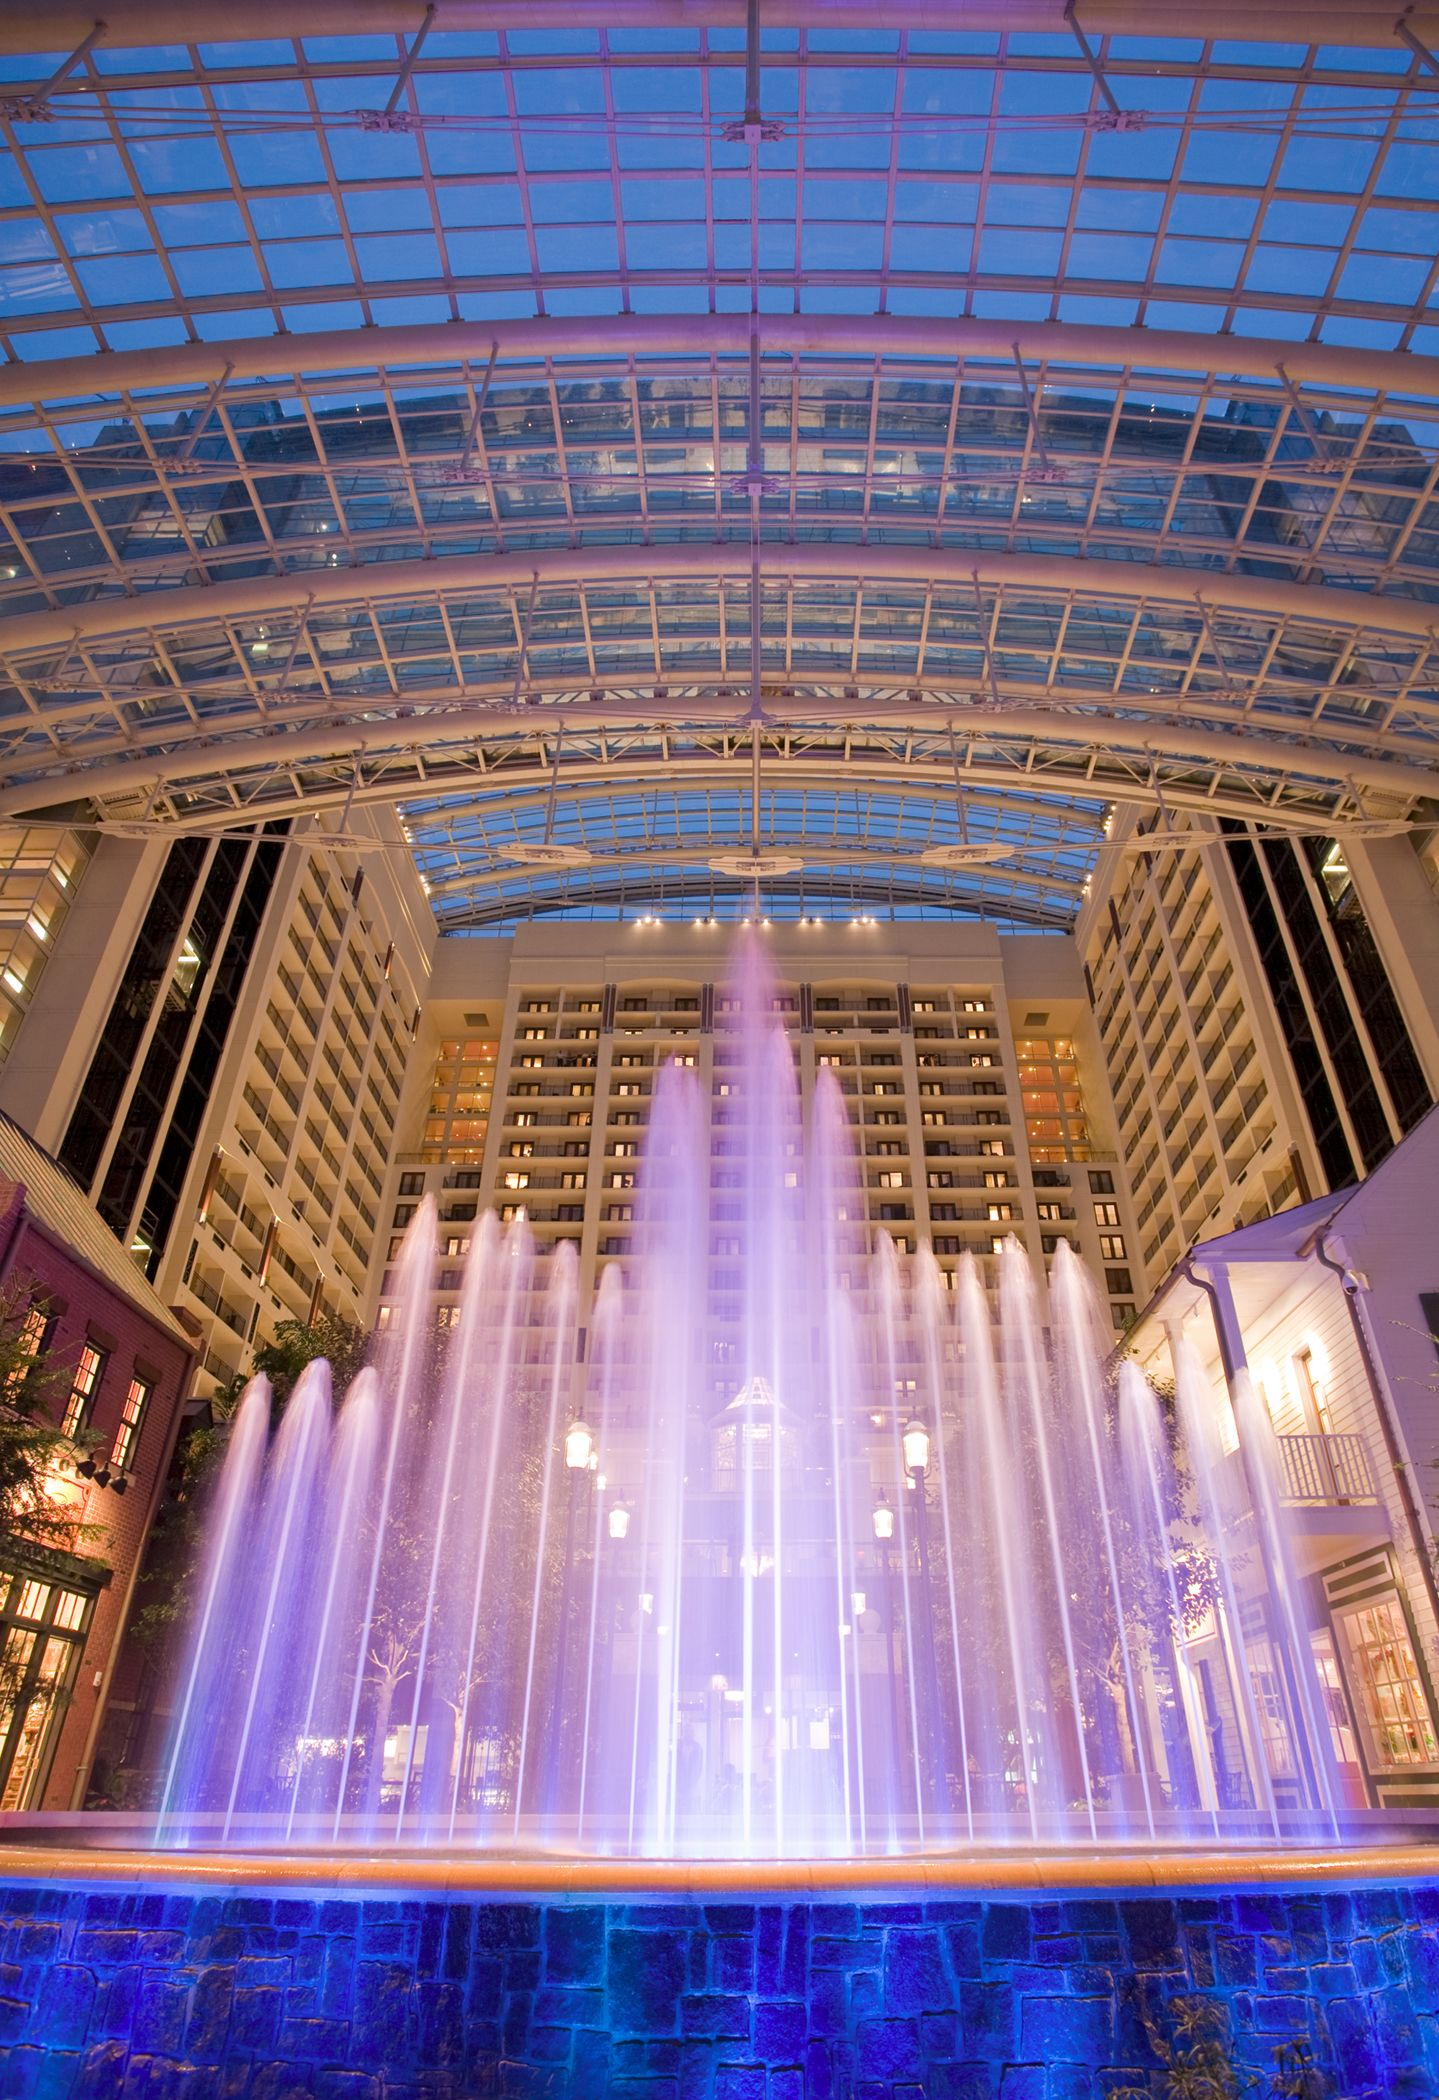 Lord Hotel National Harbor 3 Piece Jazz Ensemble And The Atrium Water Fountain Light Show